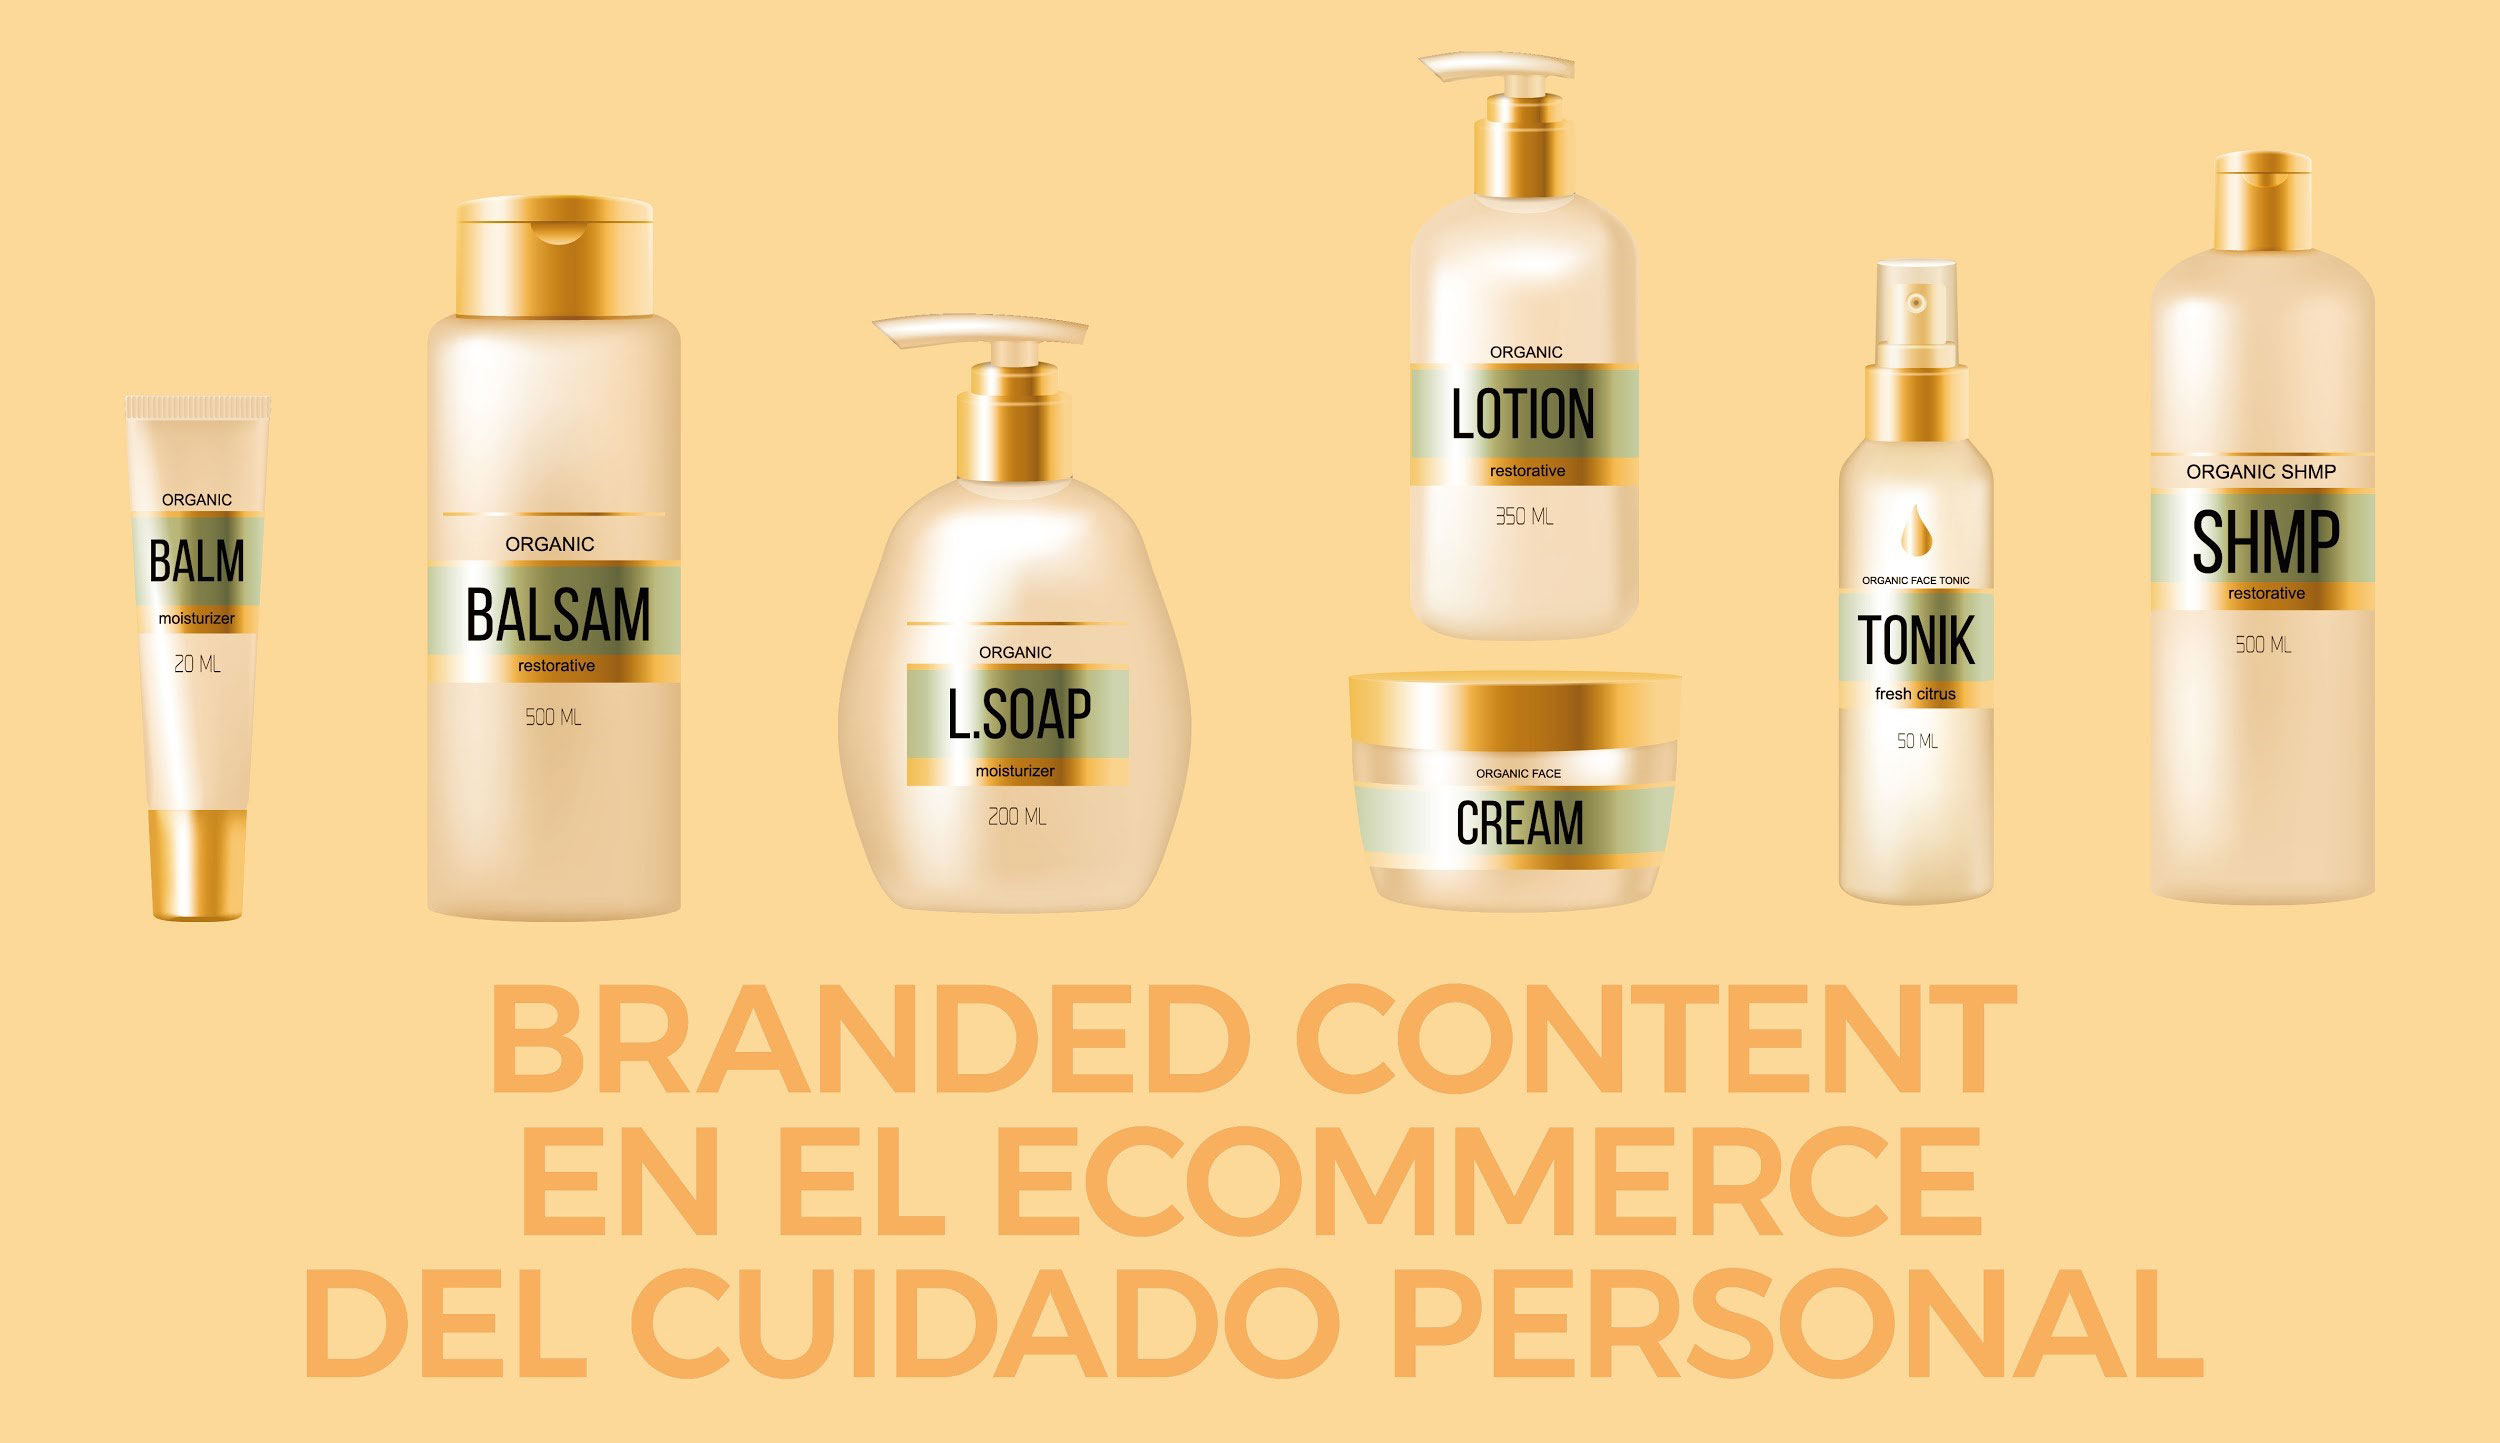 BP-branded_content_ecommerce_11